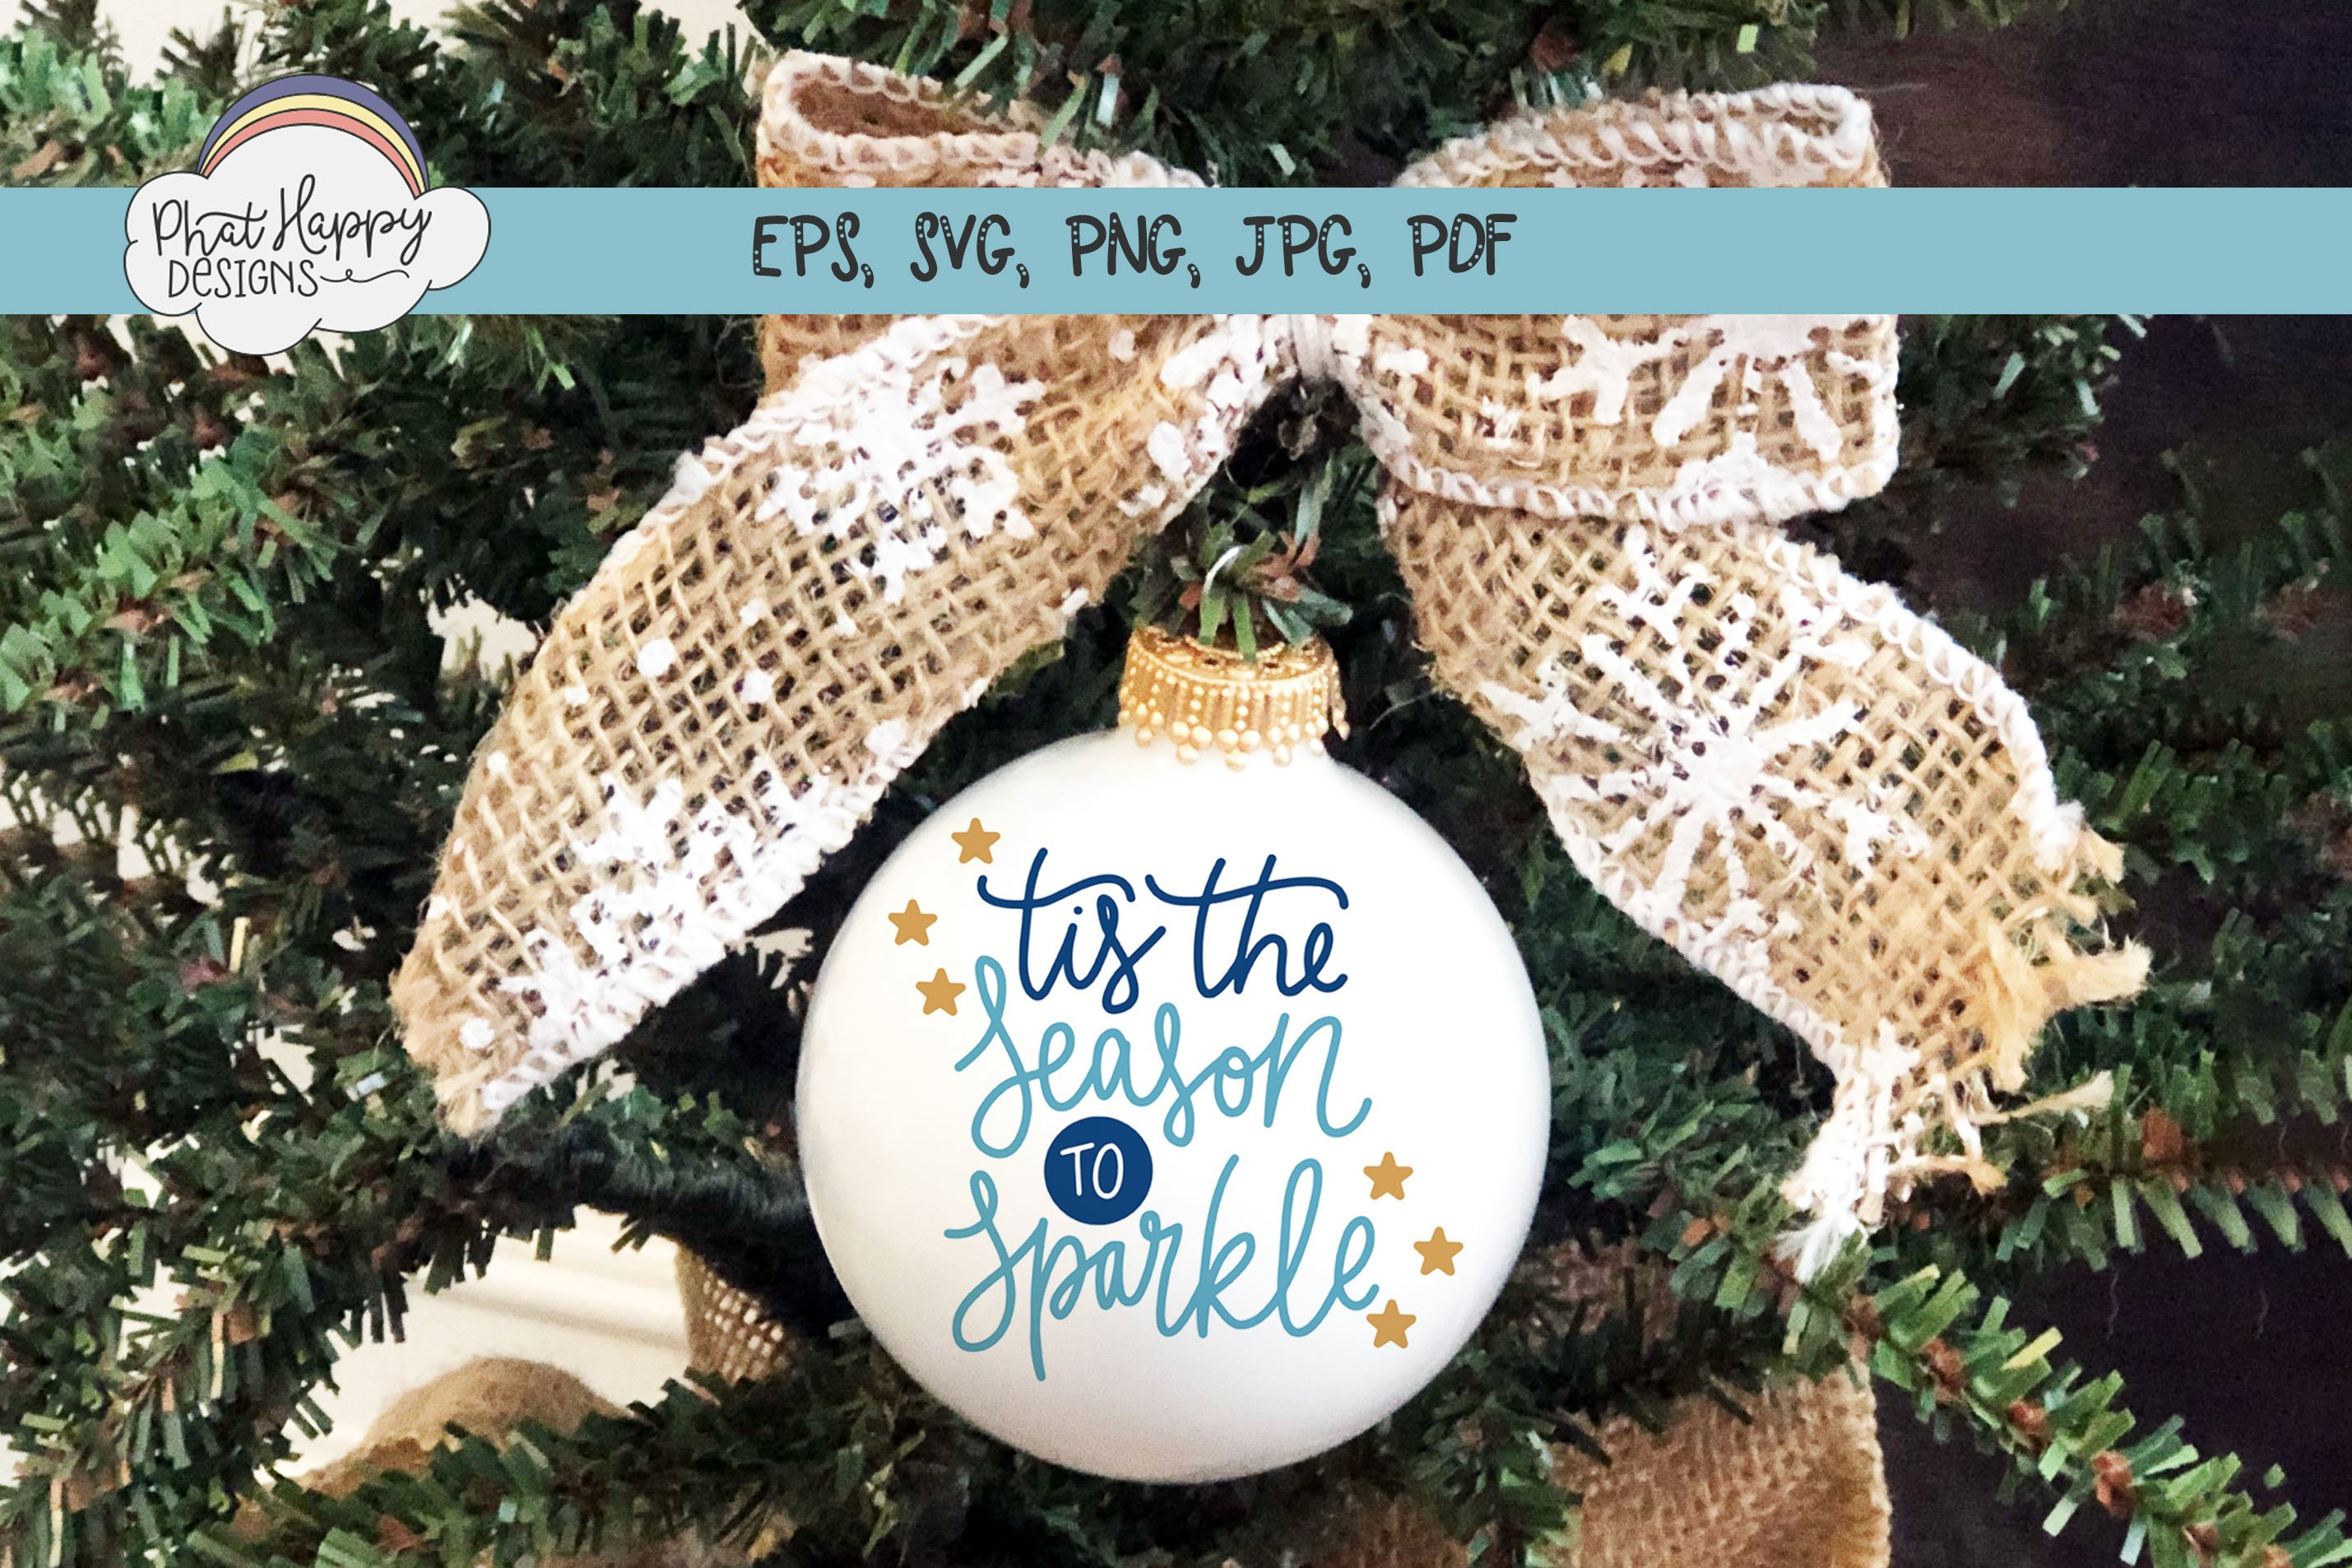 Season to Sparkle - Hand Lettered Christmas SVG example image 2